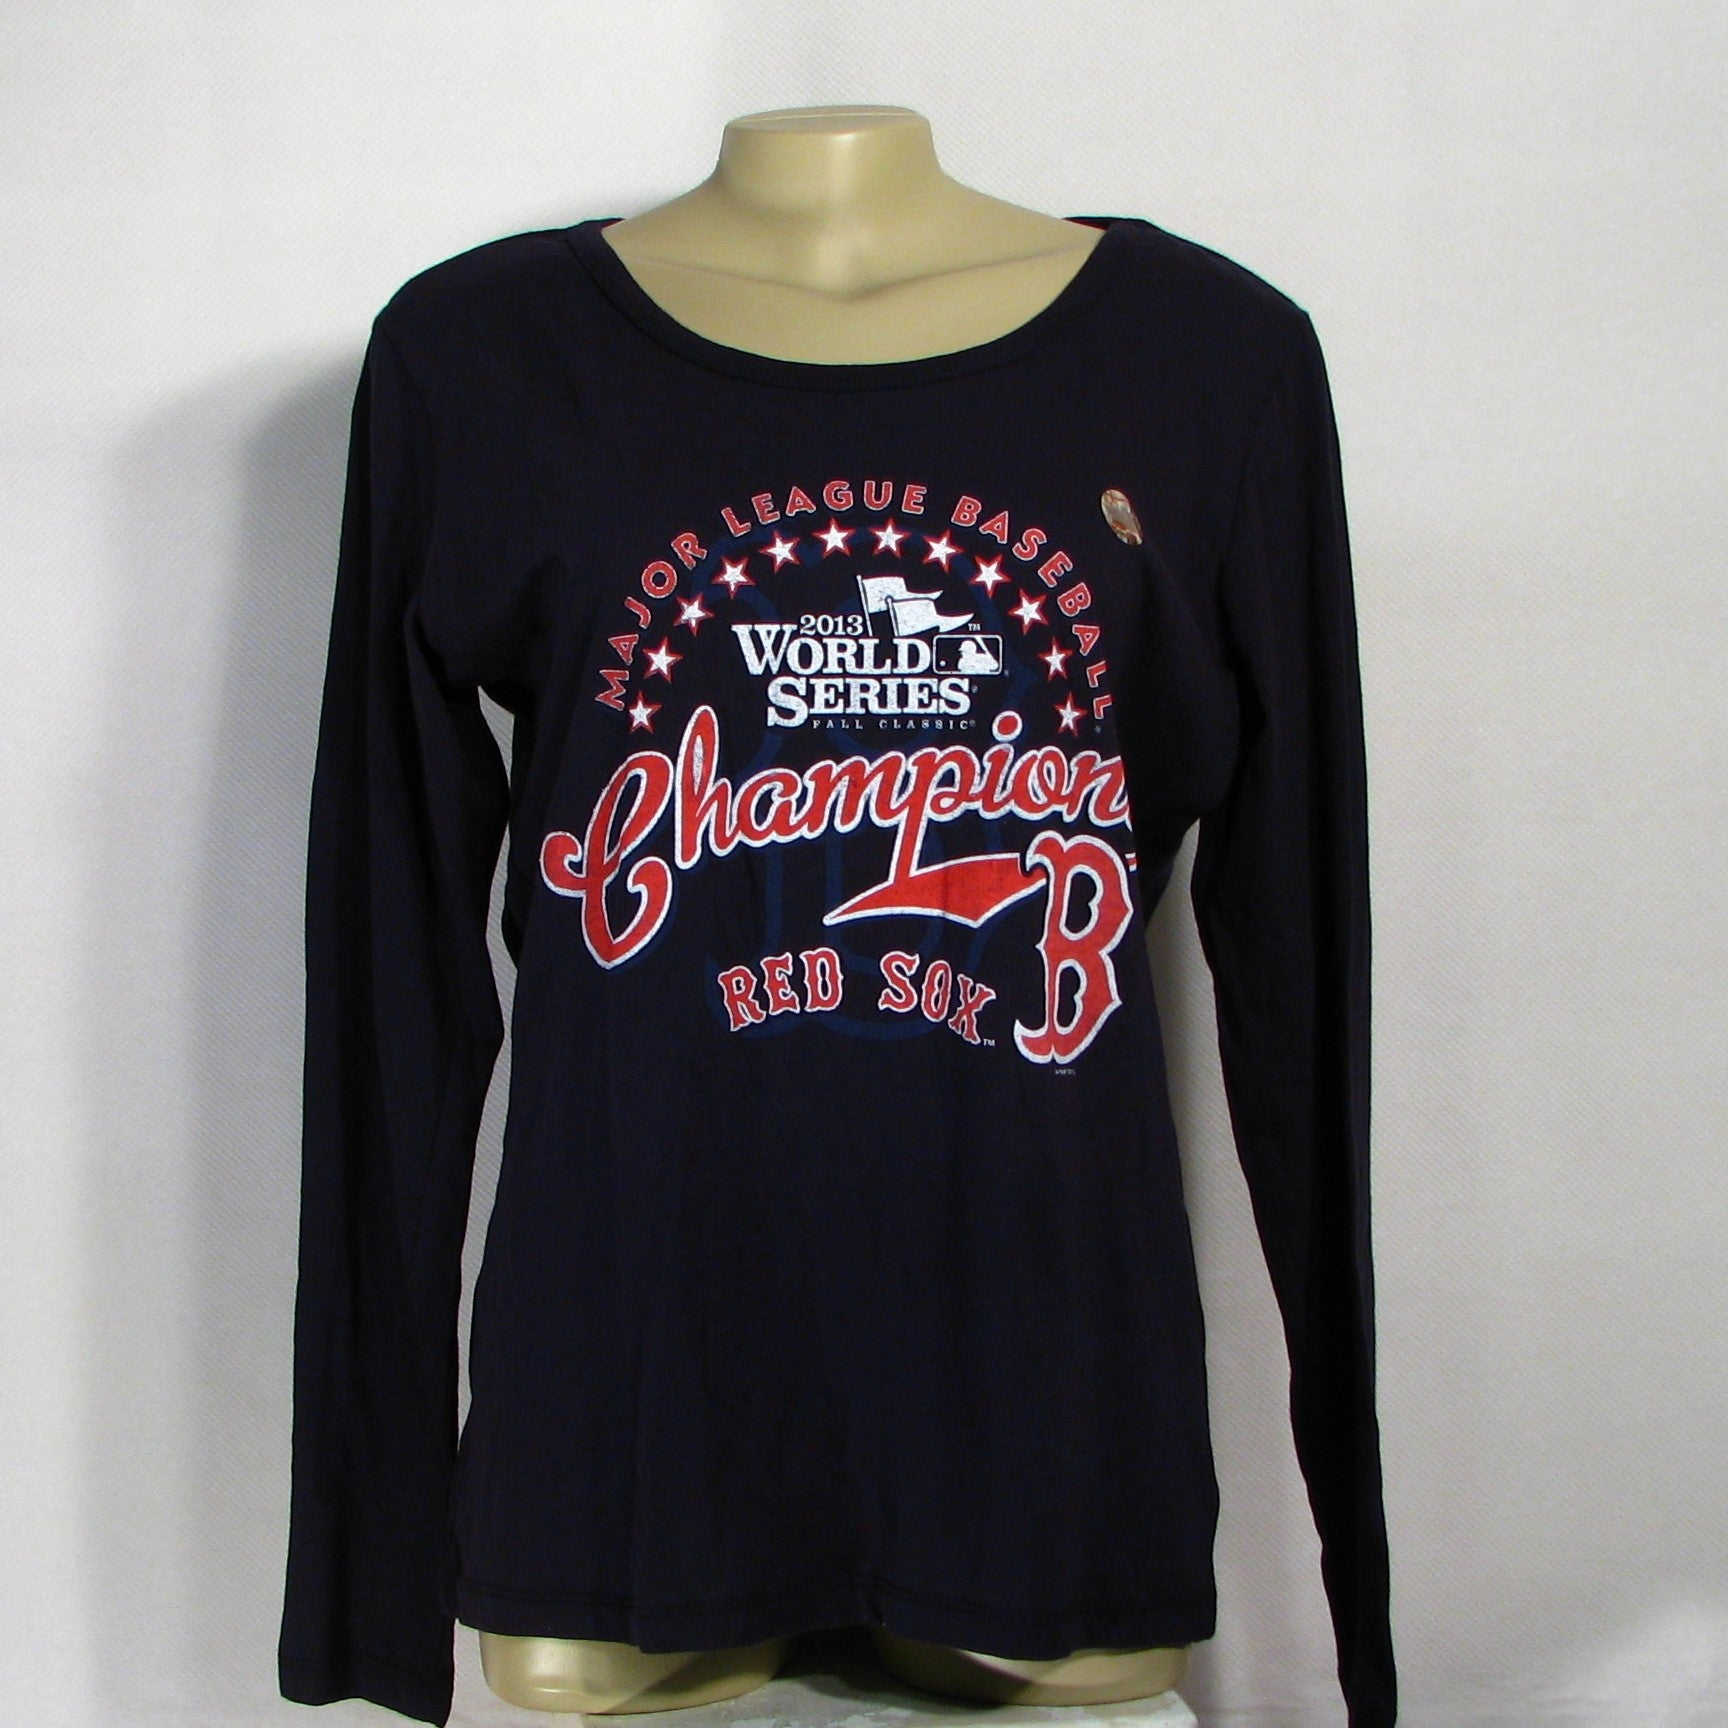 Red Sox 2013 Champions Long Sleeve T-Shirt Womens